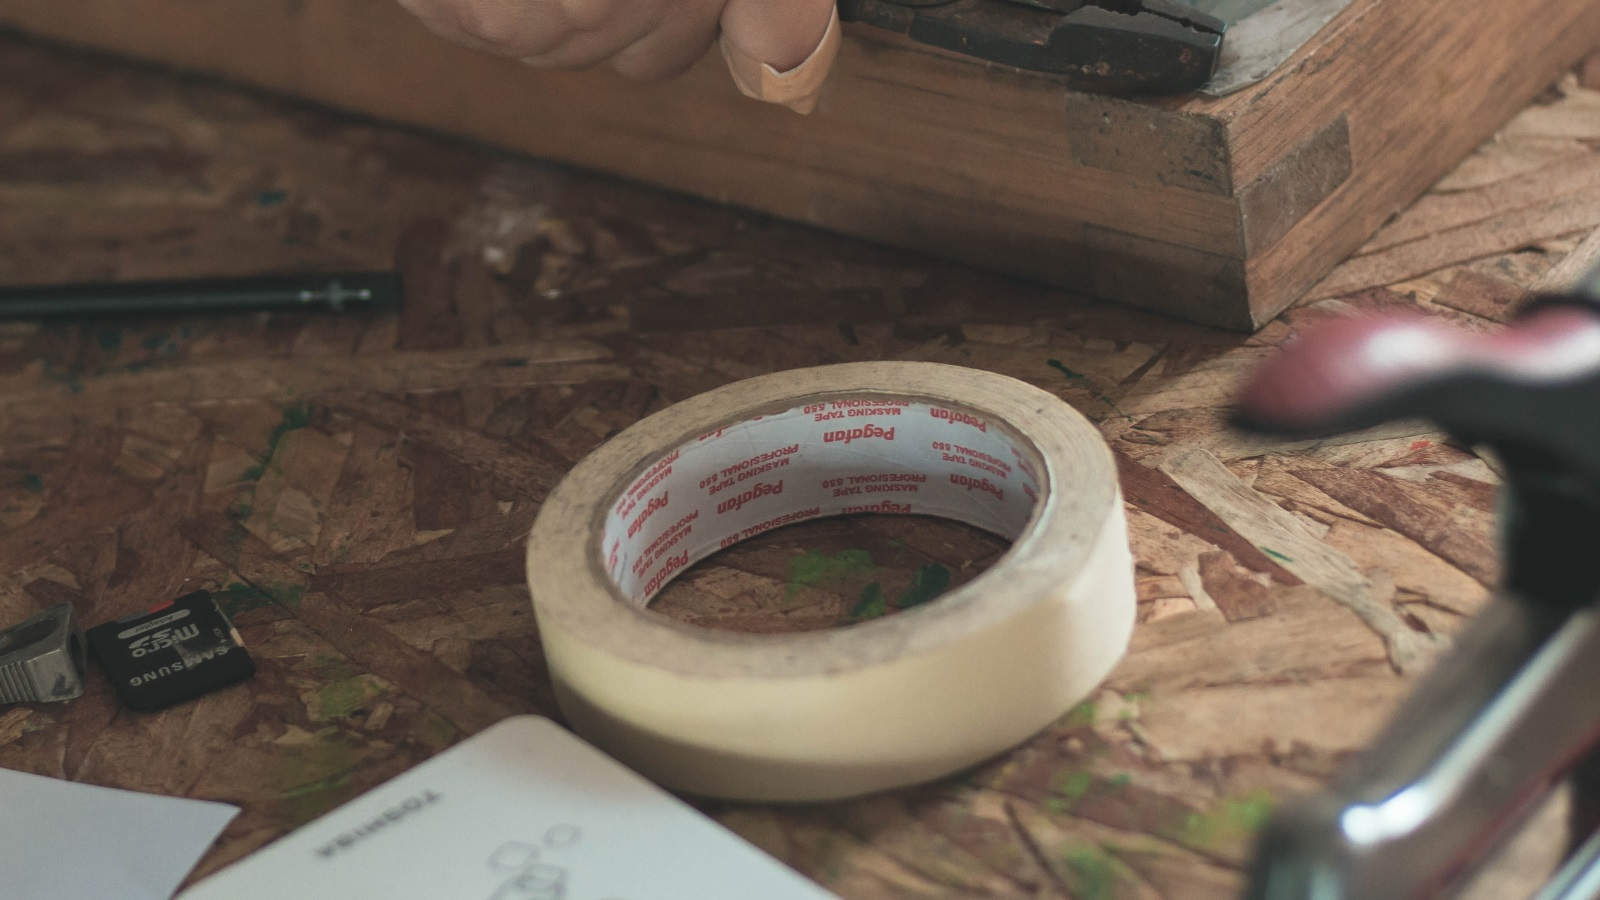 Masking tape lying on a work bench